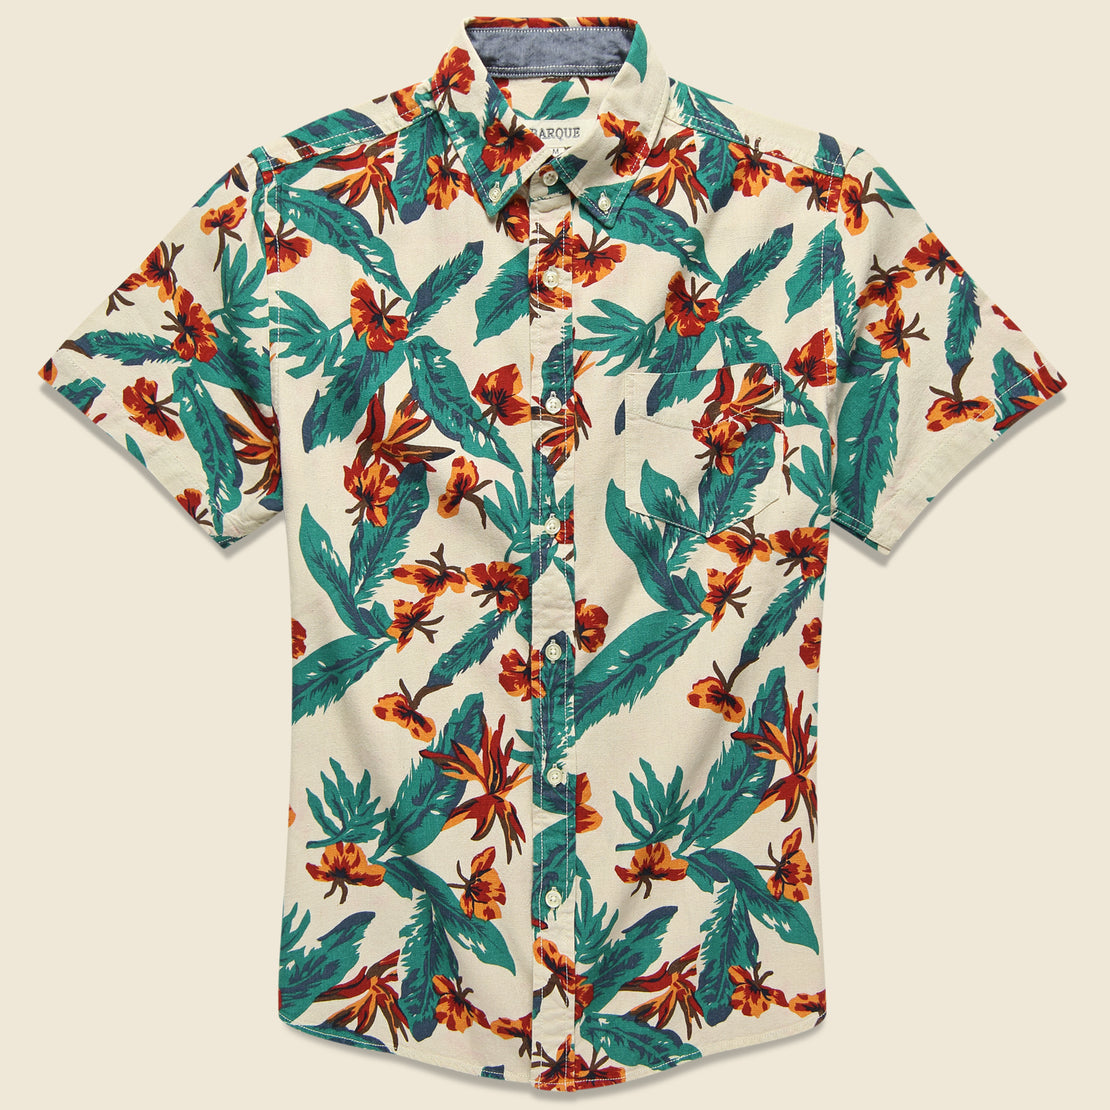 Barque Tropical Print Shirt - Natural